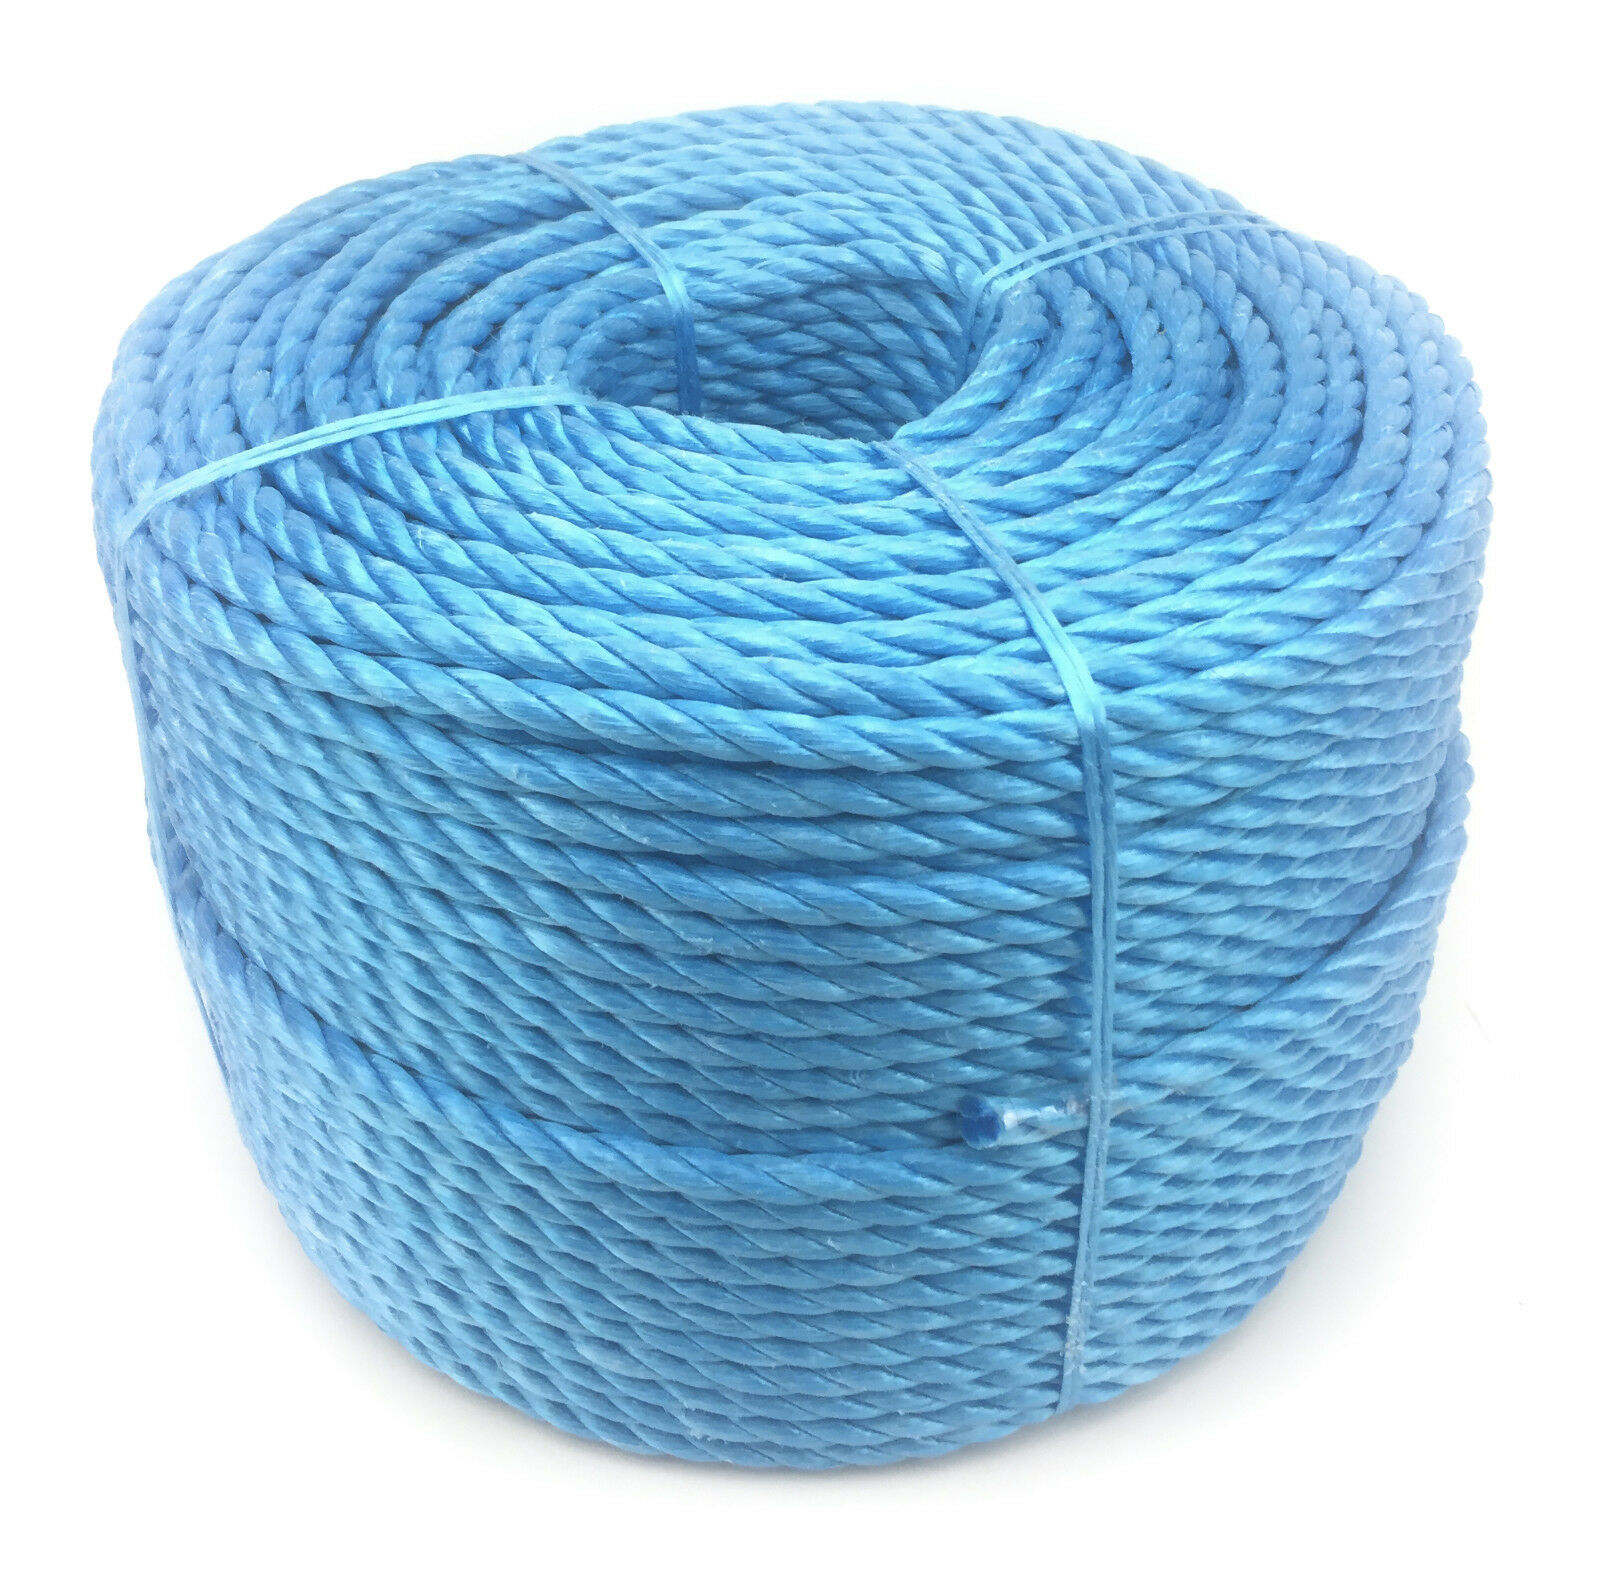 18mm bluee Polypropylene Rope x 40 Metres, Poly Rope Coils, Cheap Nylon Rope